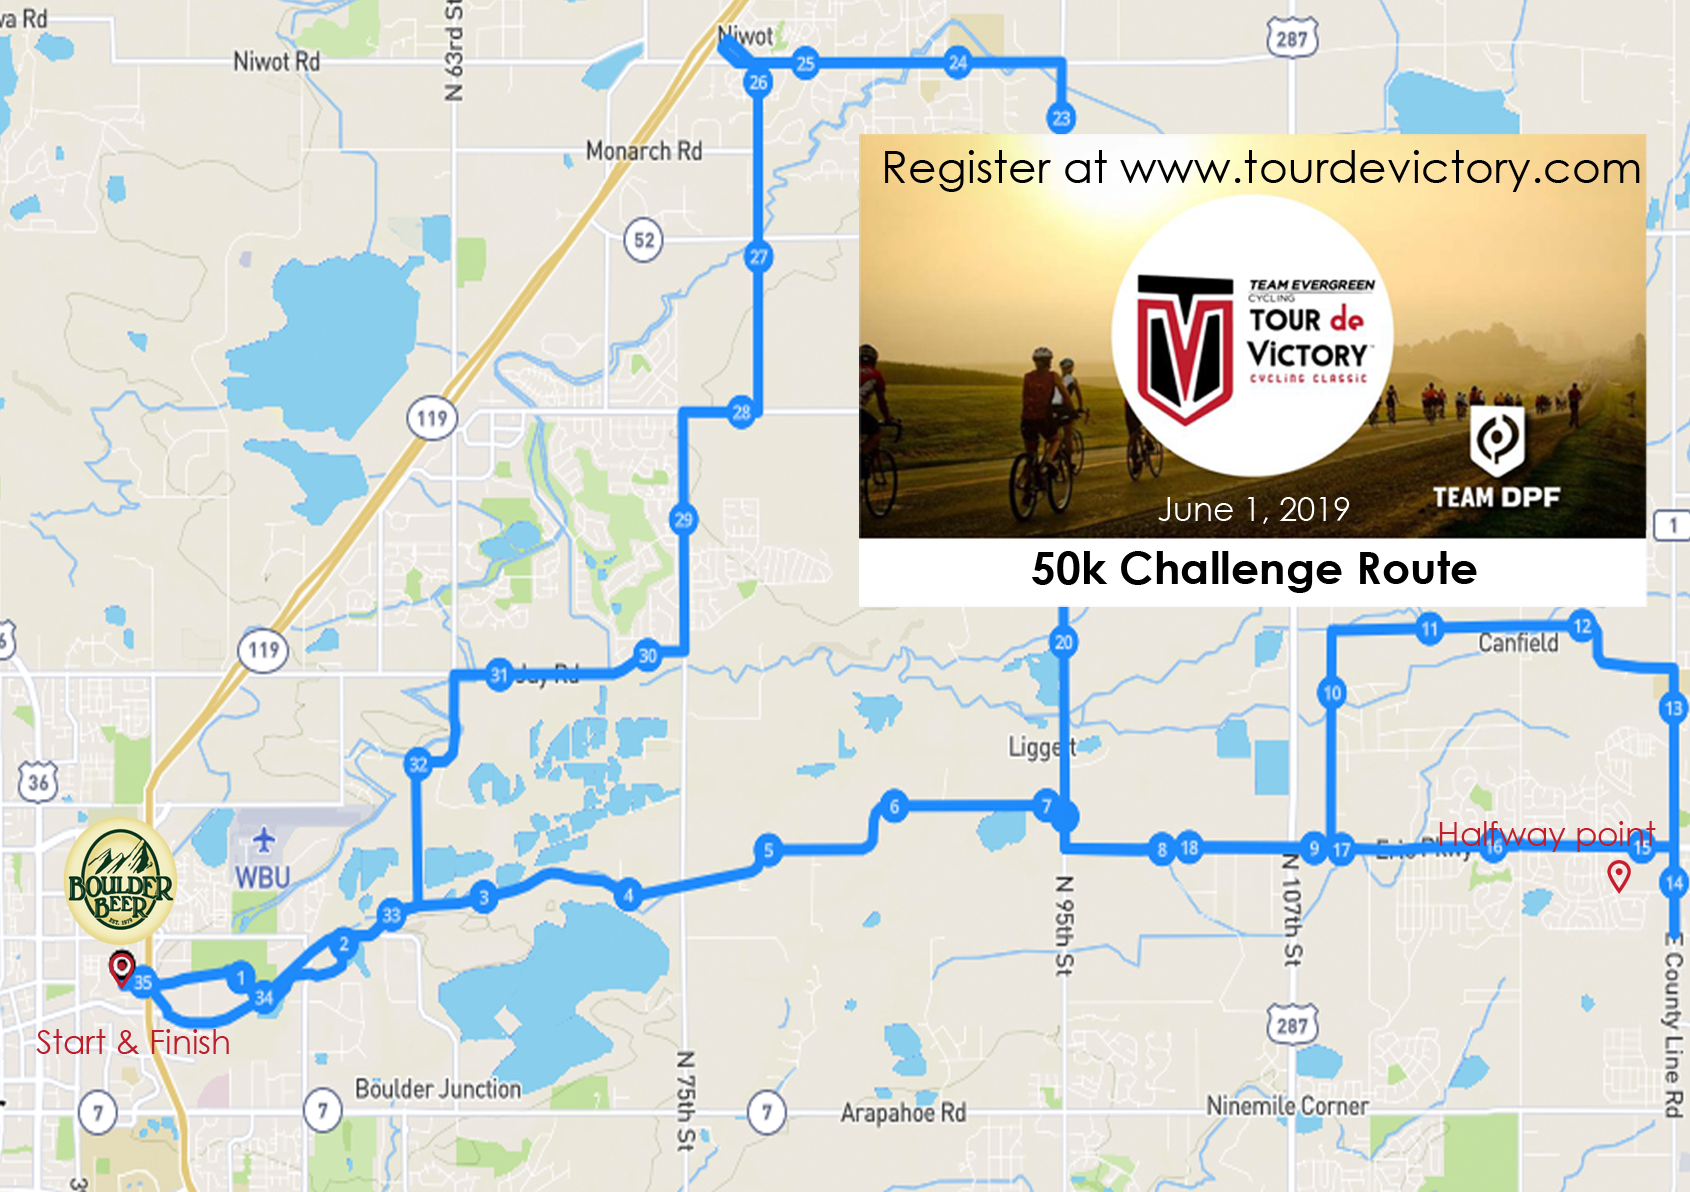 50k Challenge Route